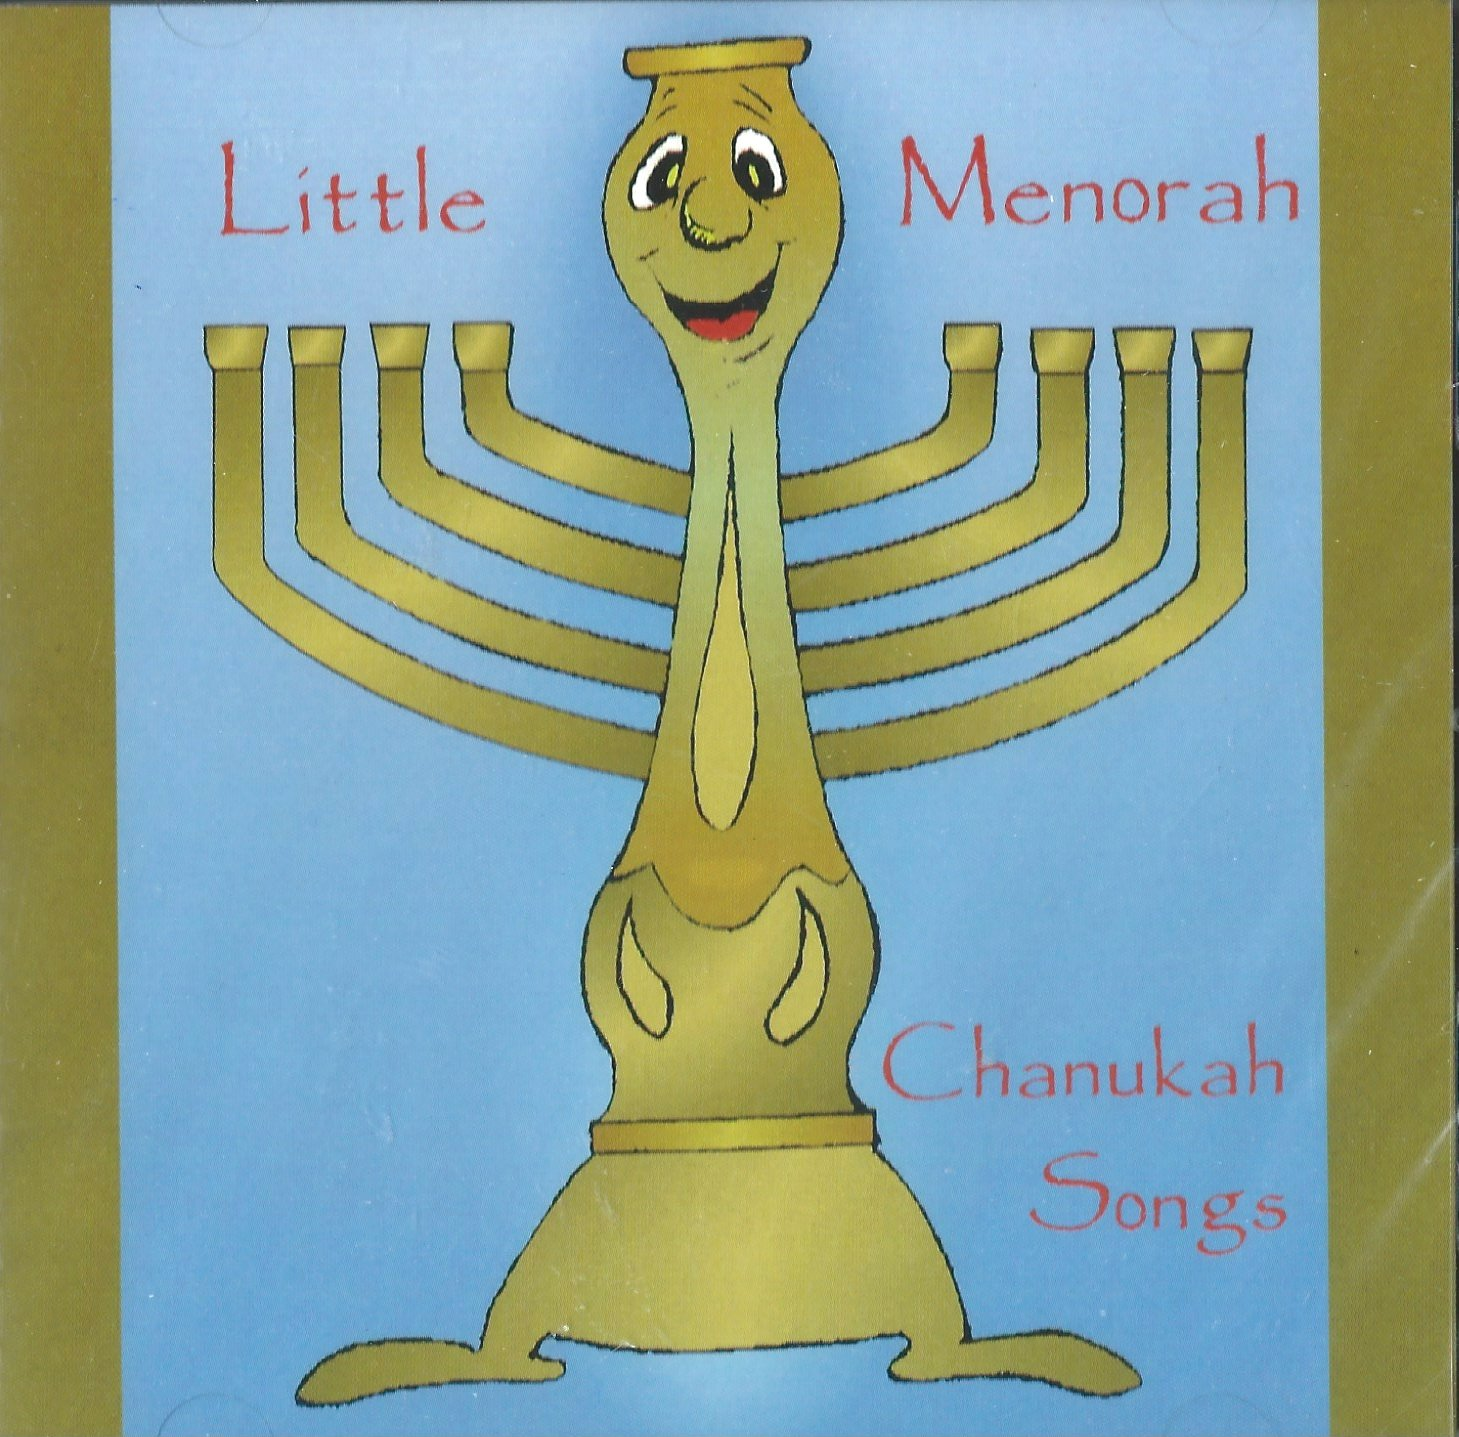 Little Menorah Chanukah Songs by B.R.C